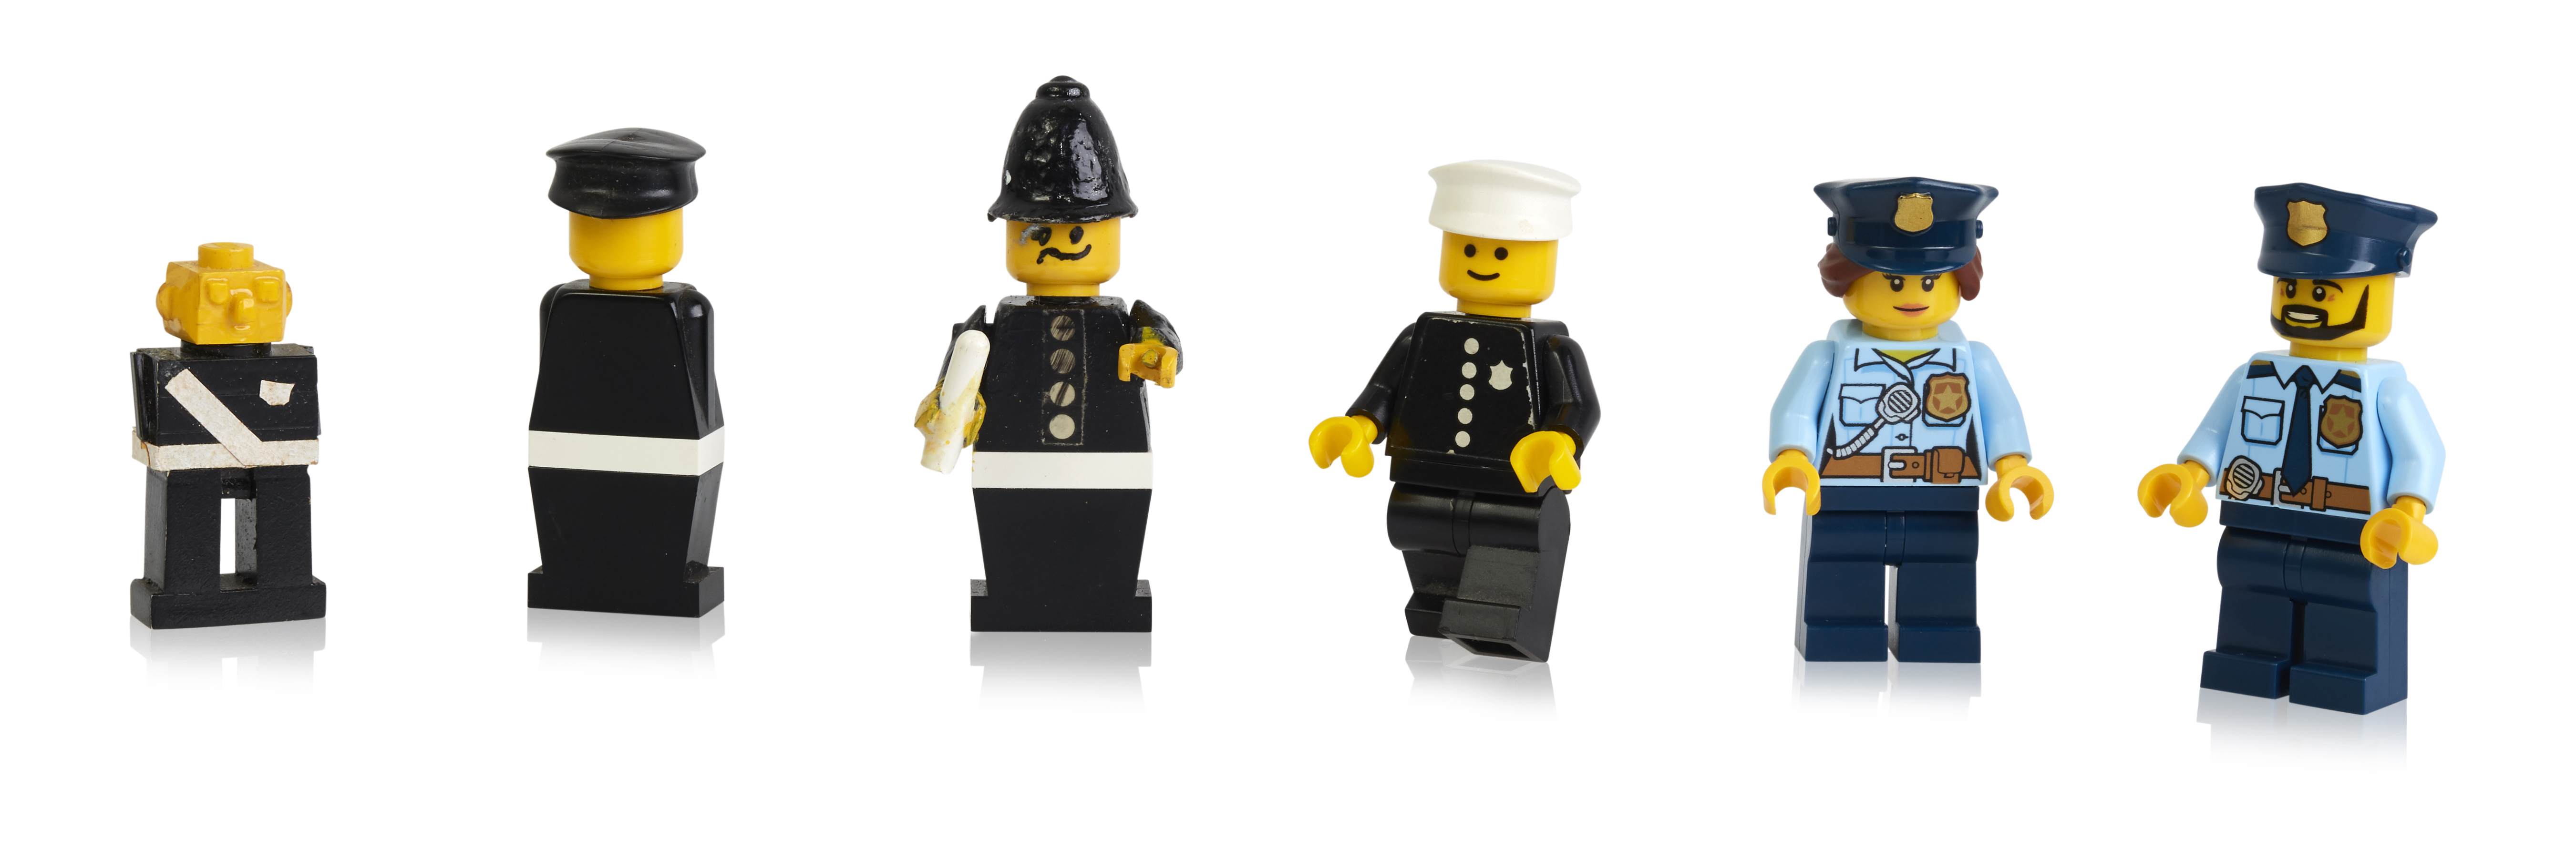 early-prototypes-first-and-more-recent-police-minifigures.jpg